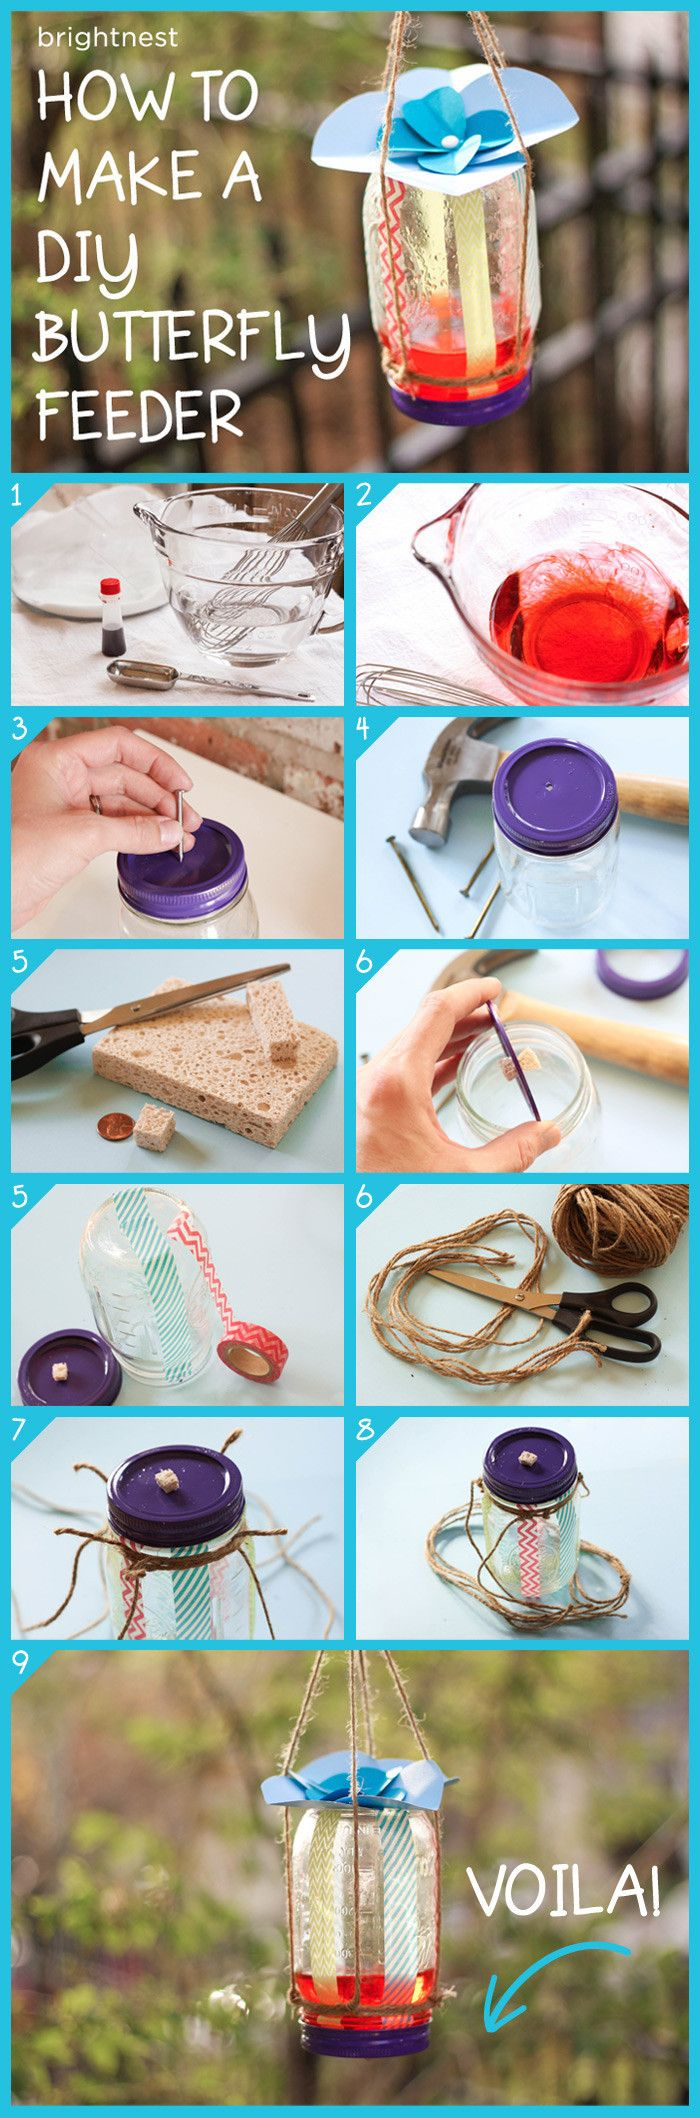 DIY TUTORIAL - BrightNest | Attract Butterflies By Making A DIY Feeder in 6 Simple Steps #happyfamilysummer